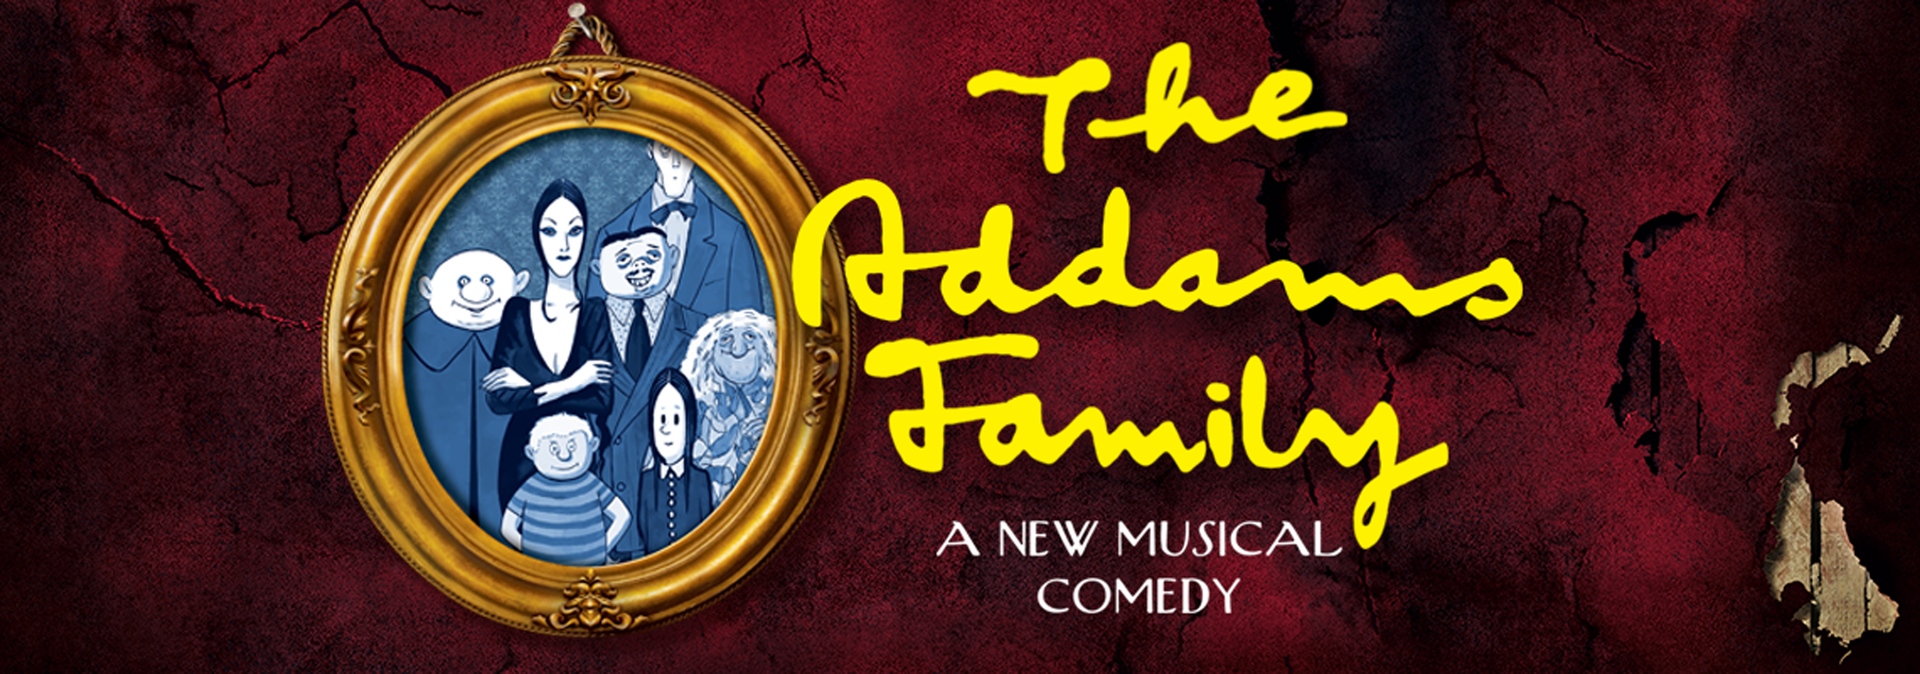 "The Westlake Players present ""The Addams Family."" Performances are March 29, 30 at 8:00 pm., March 31 at 1:00 pm., April 5 and April 6 at 8:00 pm. at the WHS Theater."